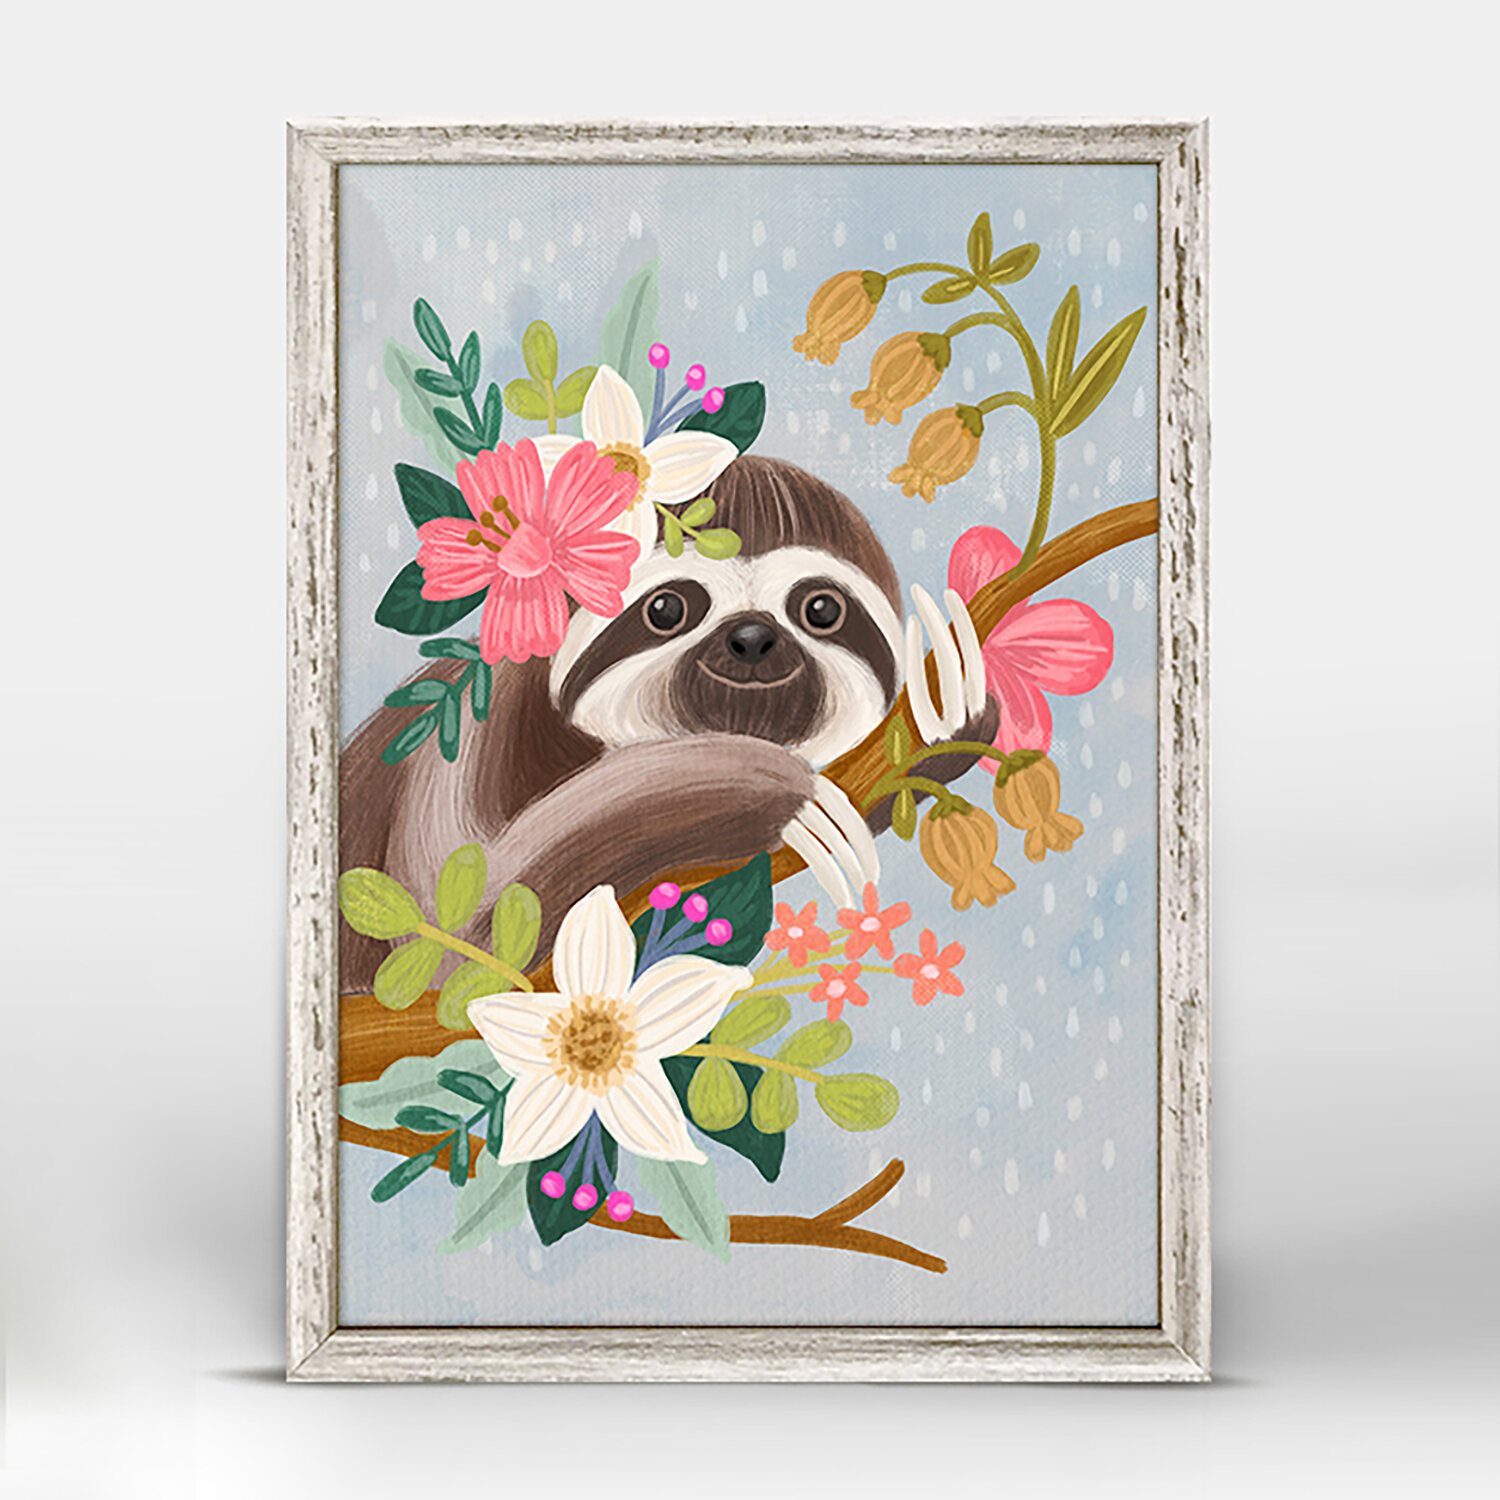 Harriet Bee Estela Sweet Sloth On Branch Mini Framed Canvas Art Wayfair